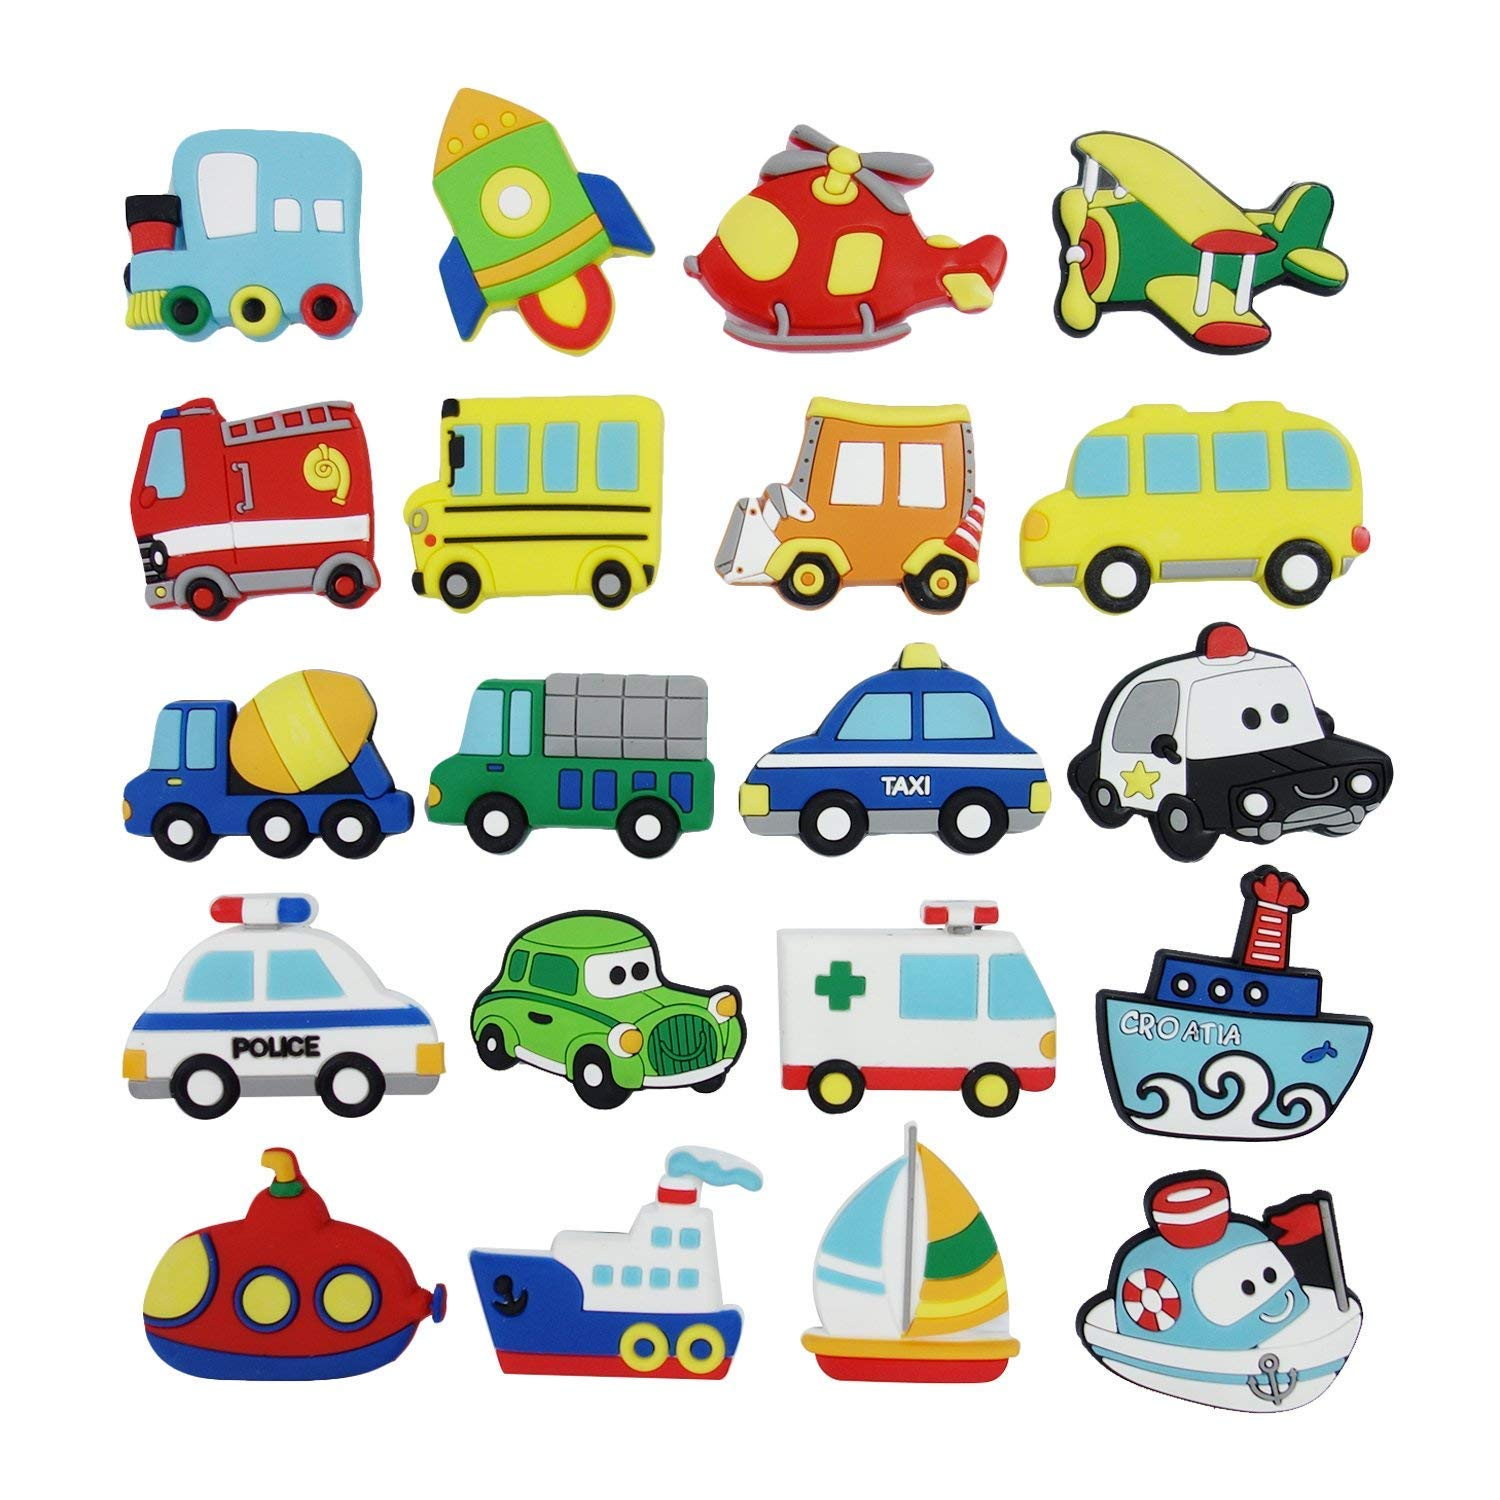 3D Vehicle Refrigerator Magnets, Pococina 20 Pack Vehicle Magnets Set, Funny Vehicle Helicopter Watercraft Rocket Fridge Magnet Set for Kids Kitchen Home Decor Classroom Office